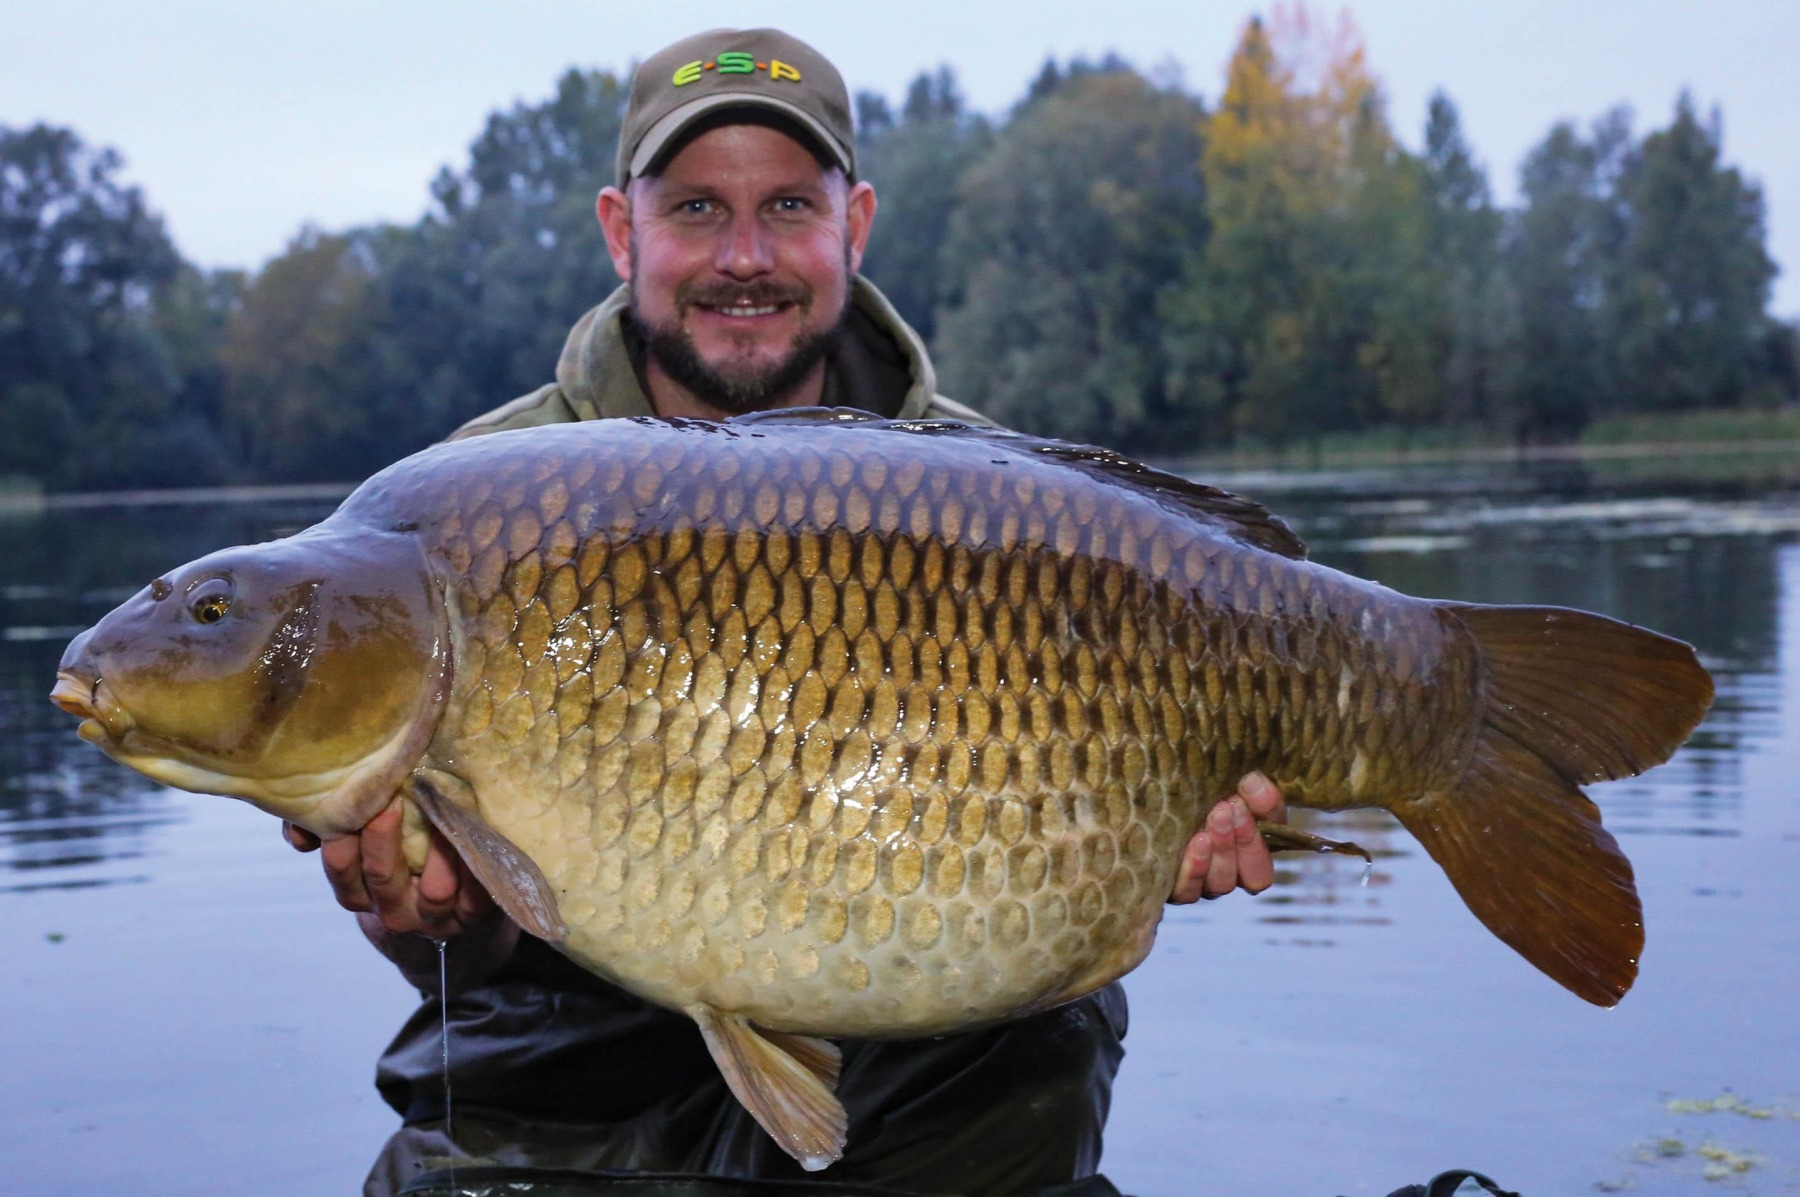 Once I'd cracked the baiting approach at Farriers, the fishing was simply mind-blowing!